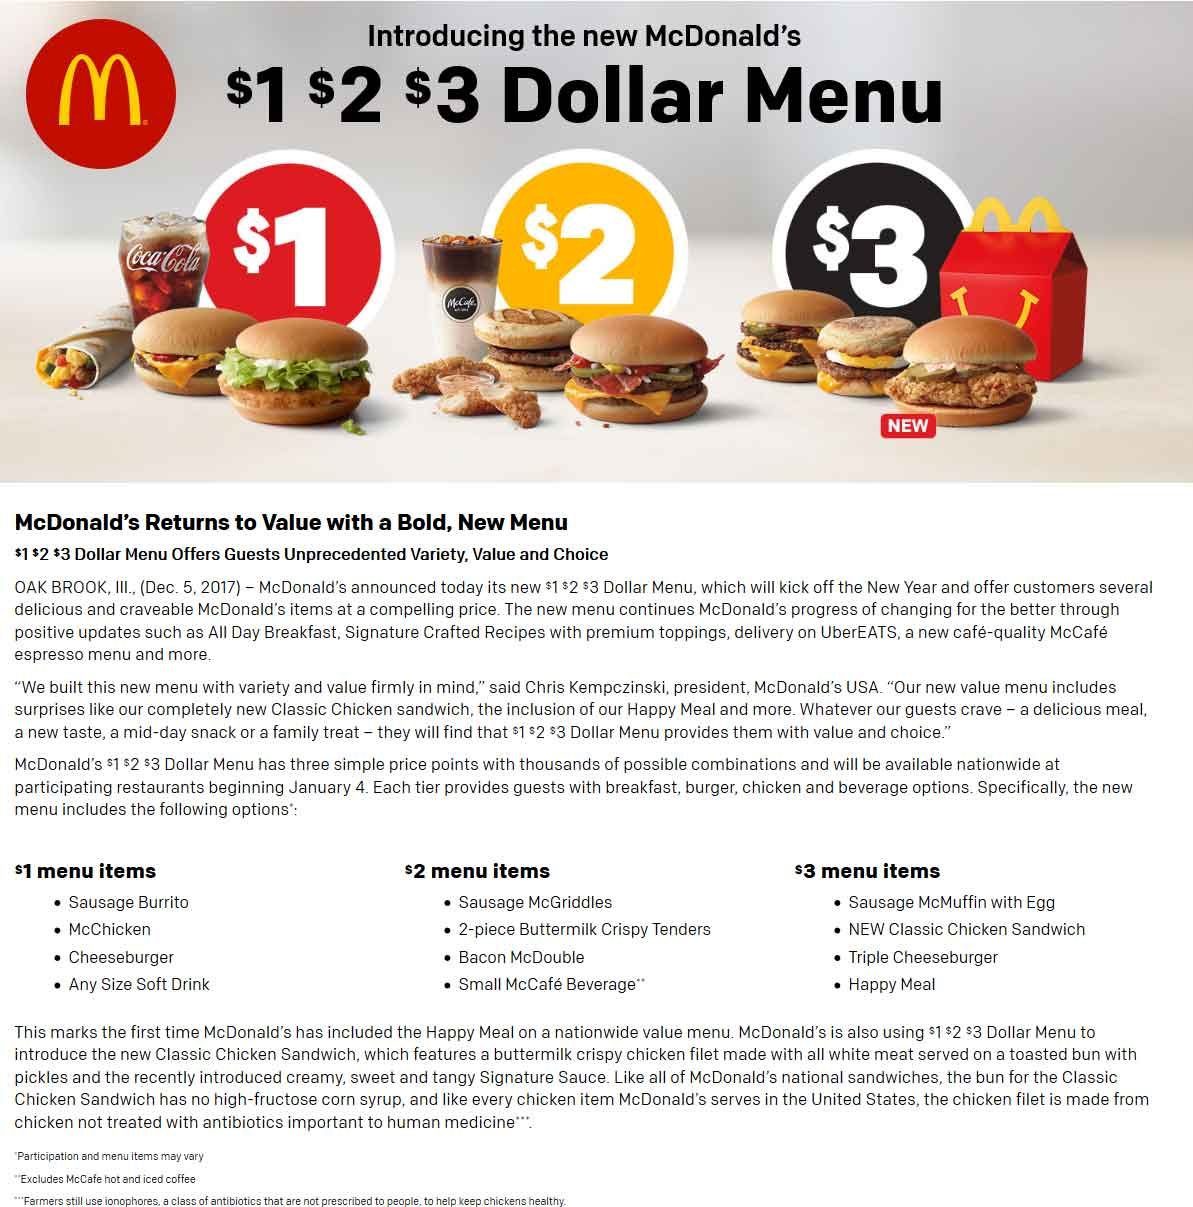 McDonalds Coupon May 2019 Happy meal added to McDonalds updated dollar menu